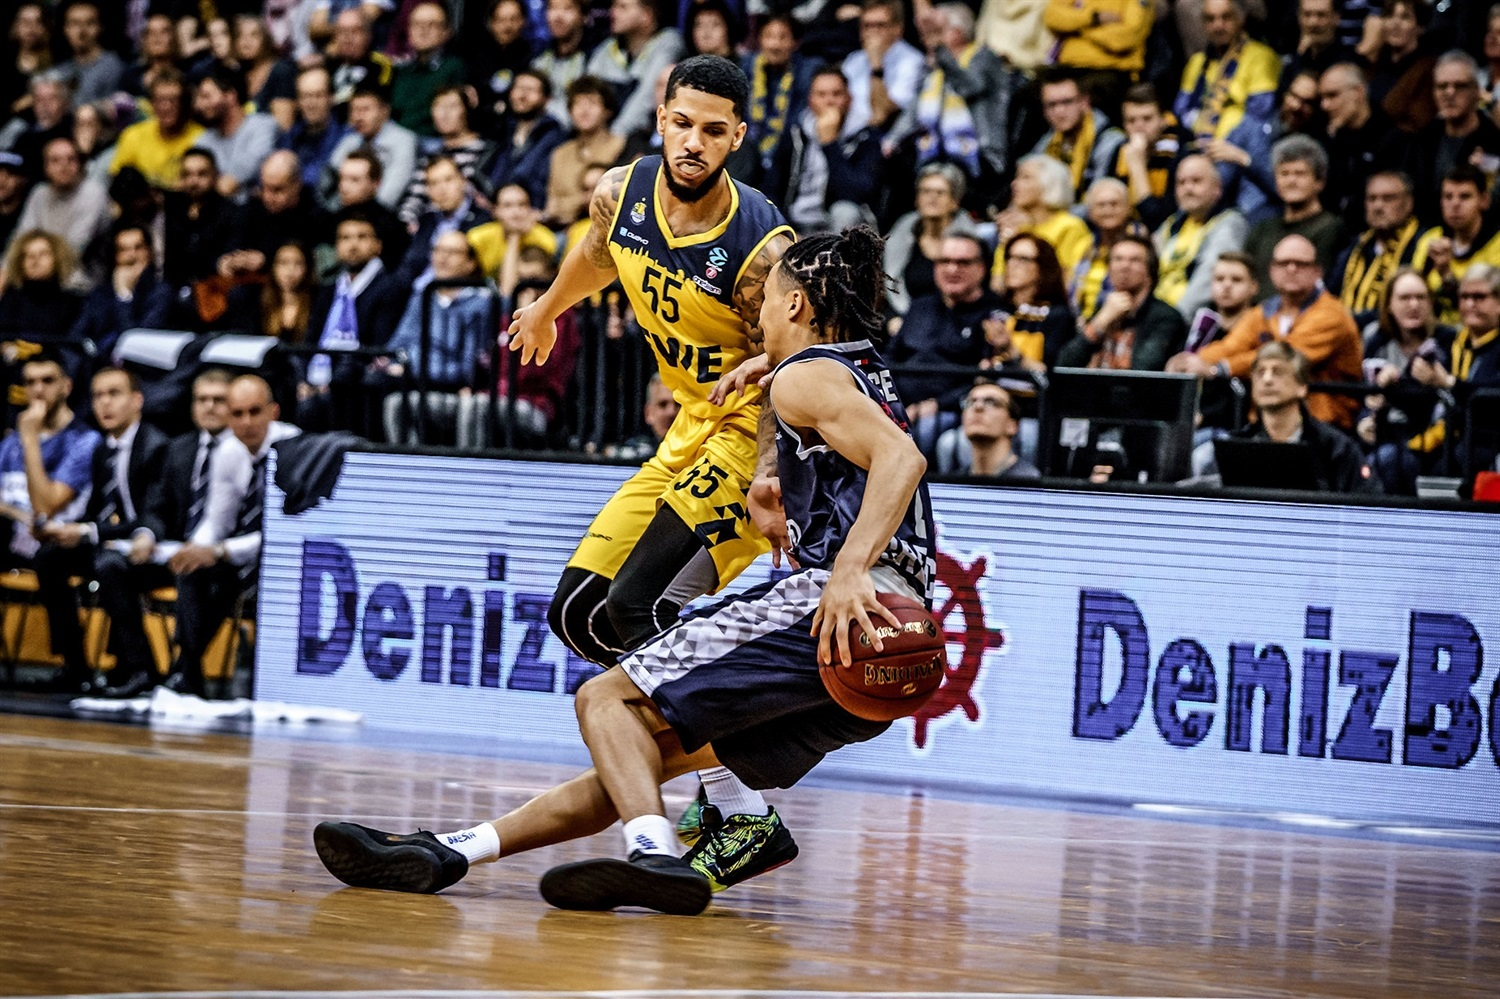 Travis Trice - Germani Brescia Leonessa (photo Ulf Duda - fotoduda.de) - EC19